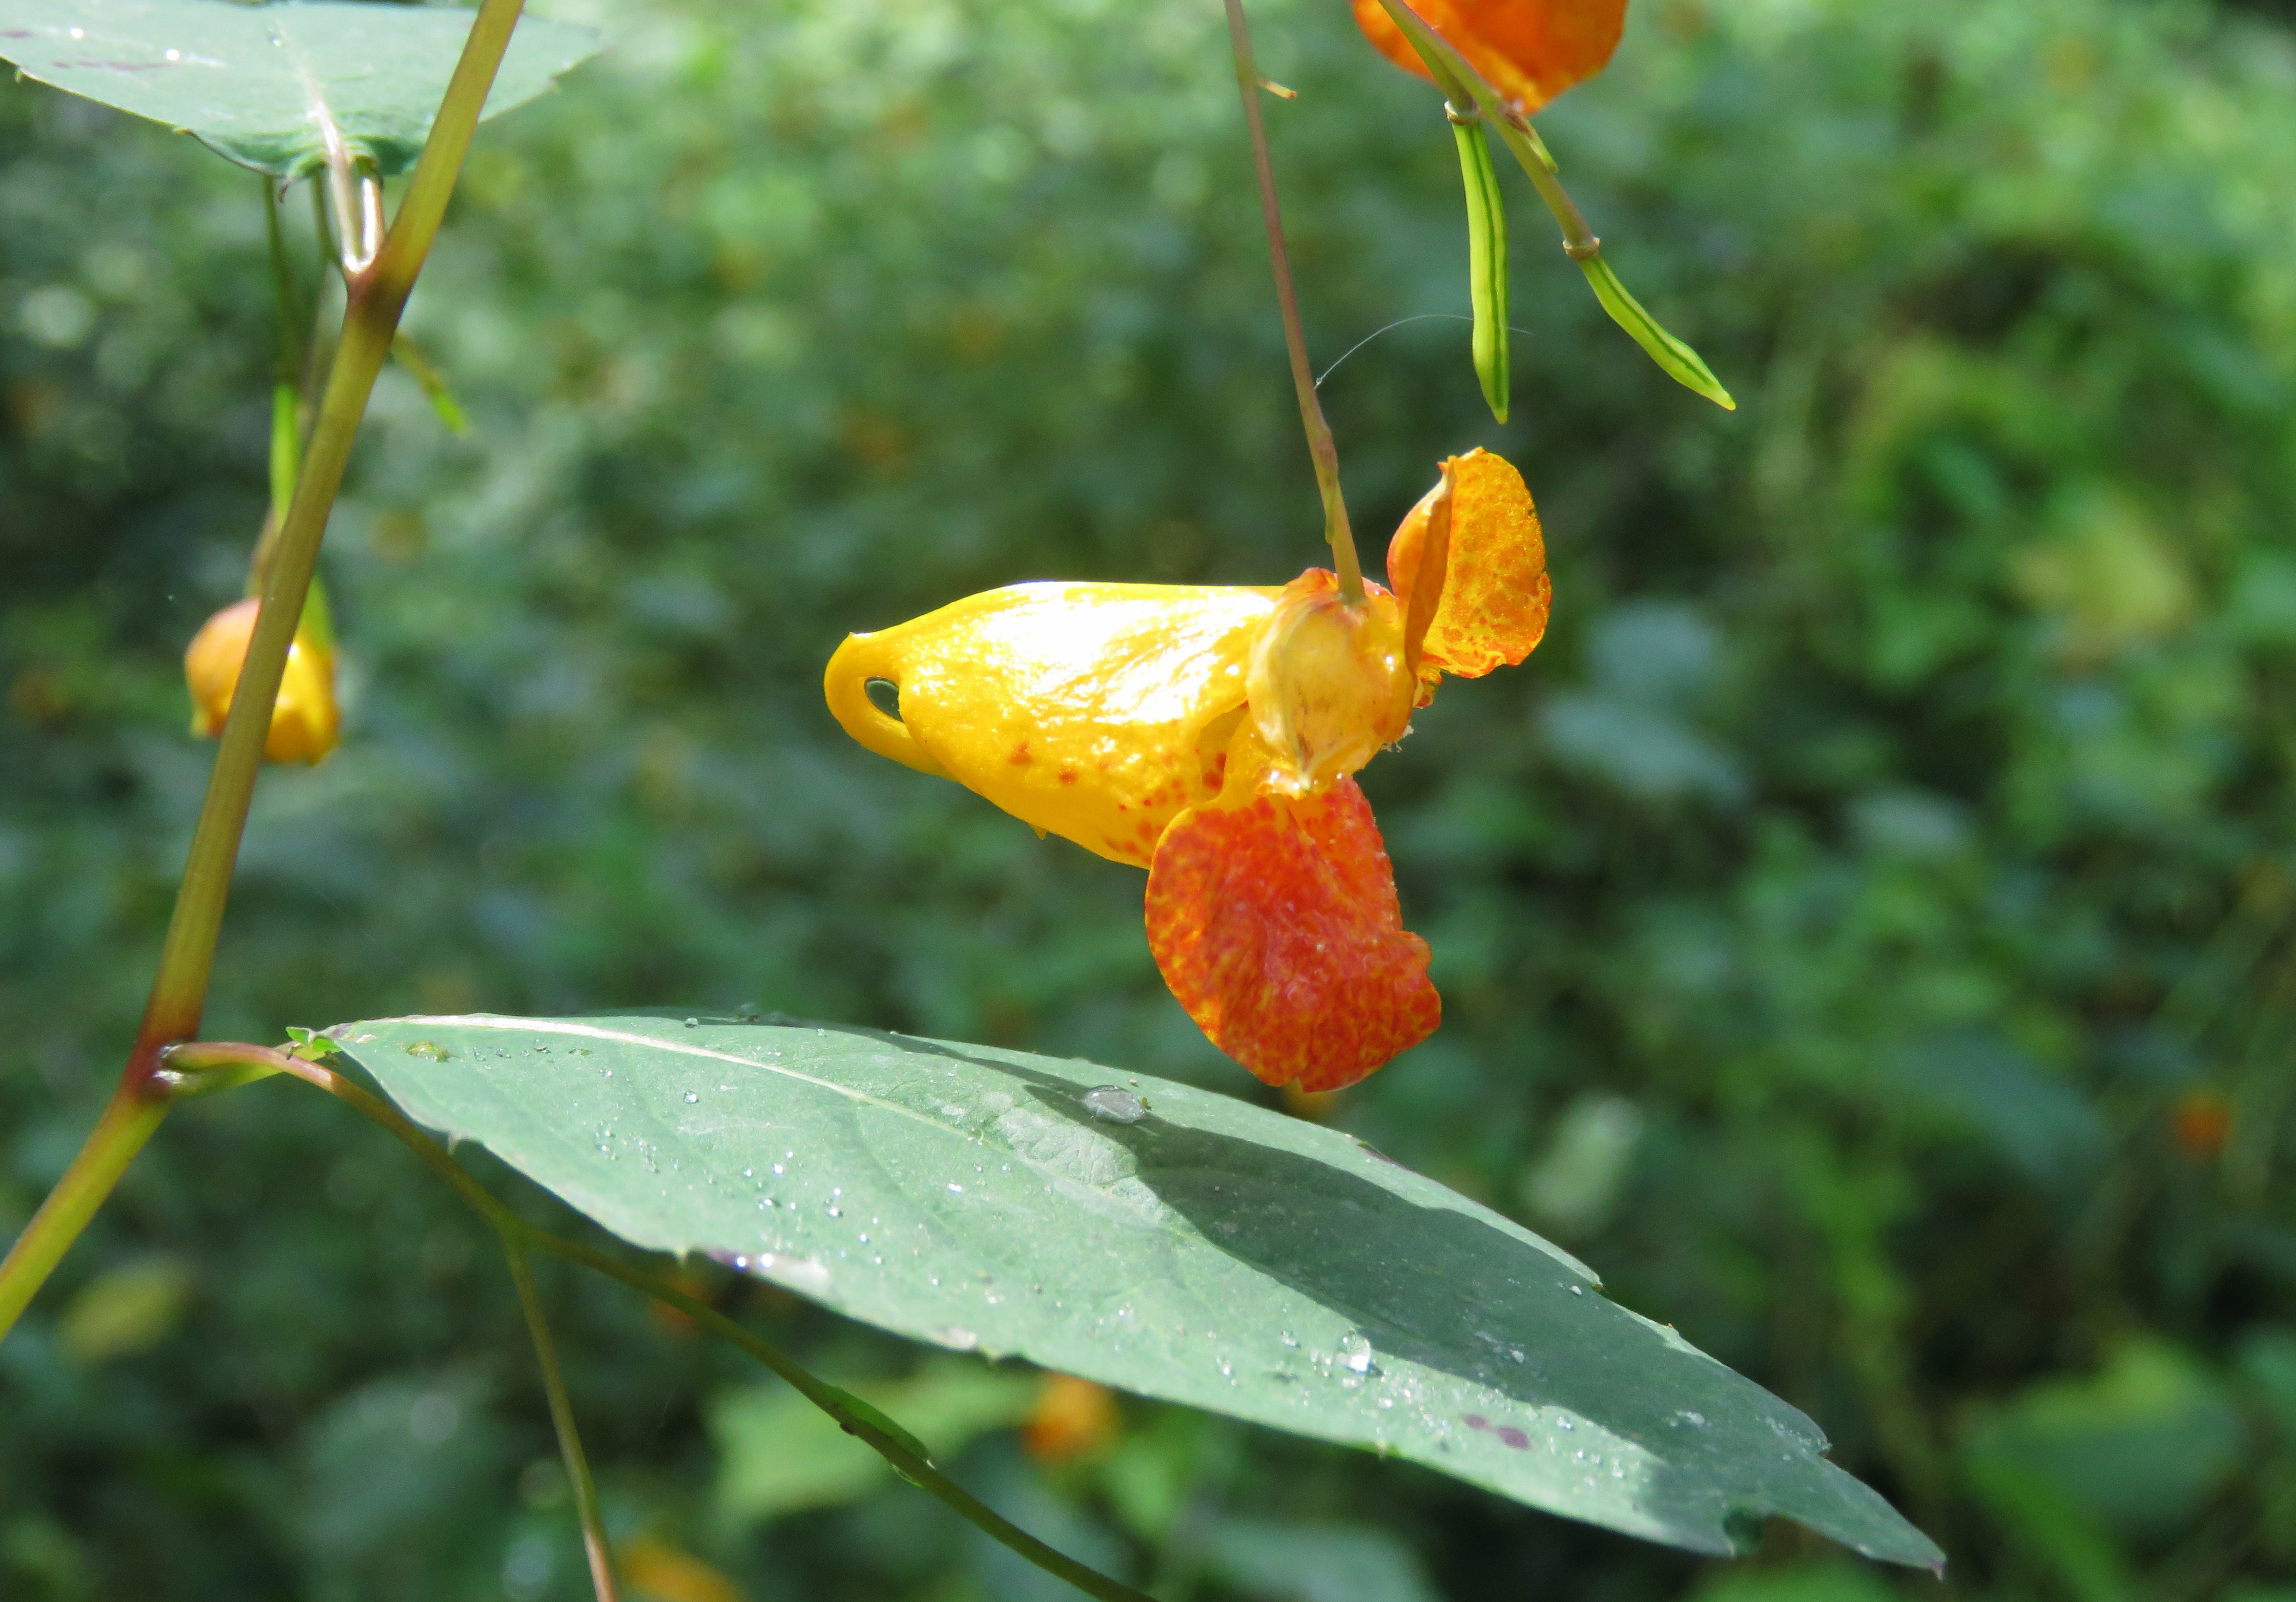 An orange jewelweed flower highlighted by the sun. Green foliage makes us the background.